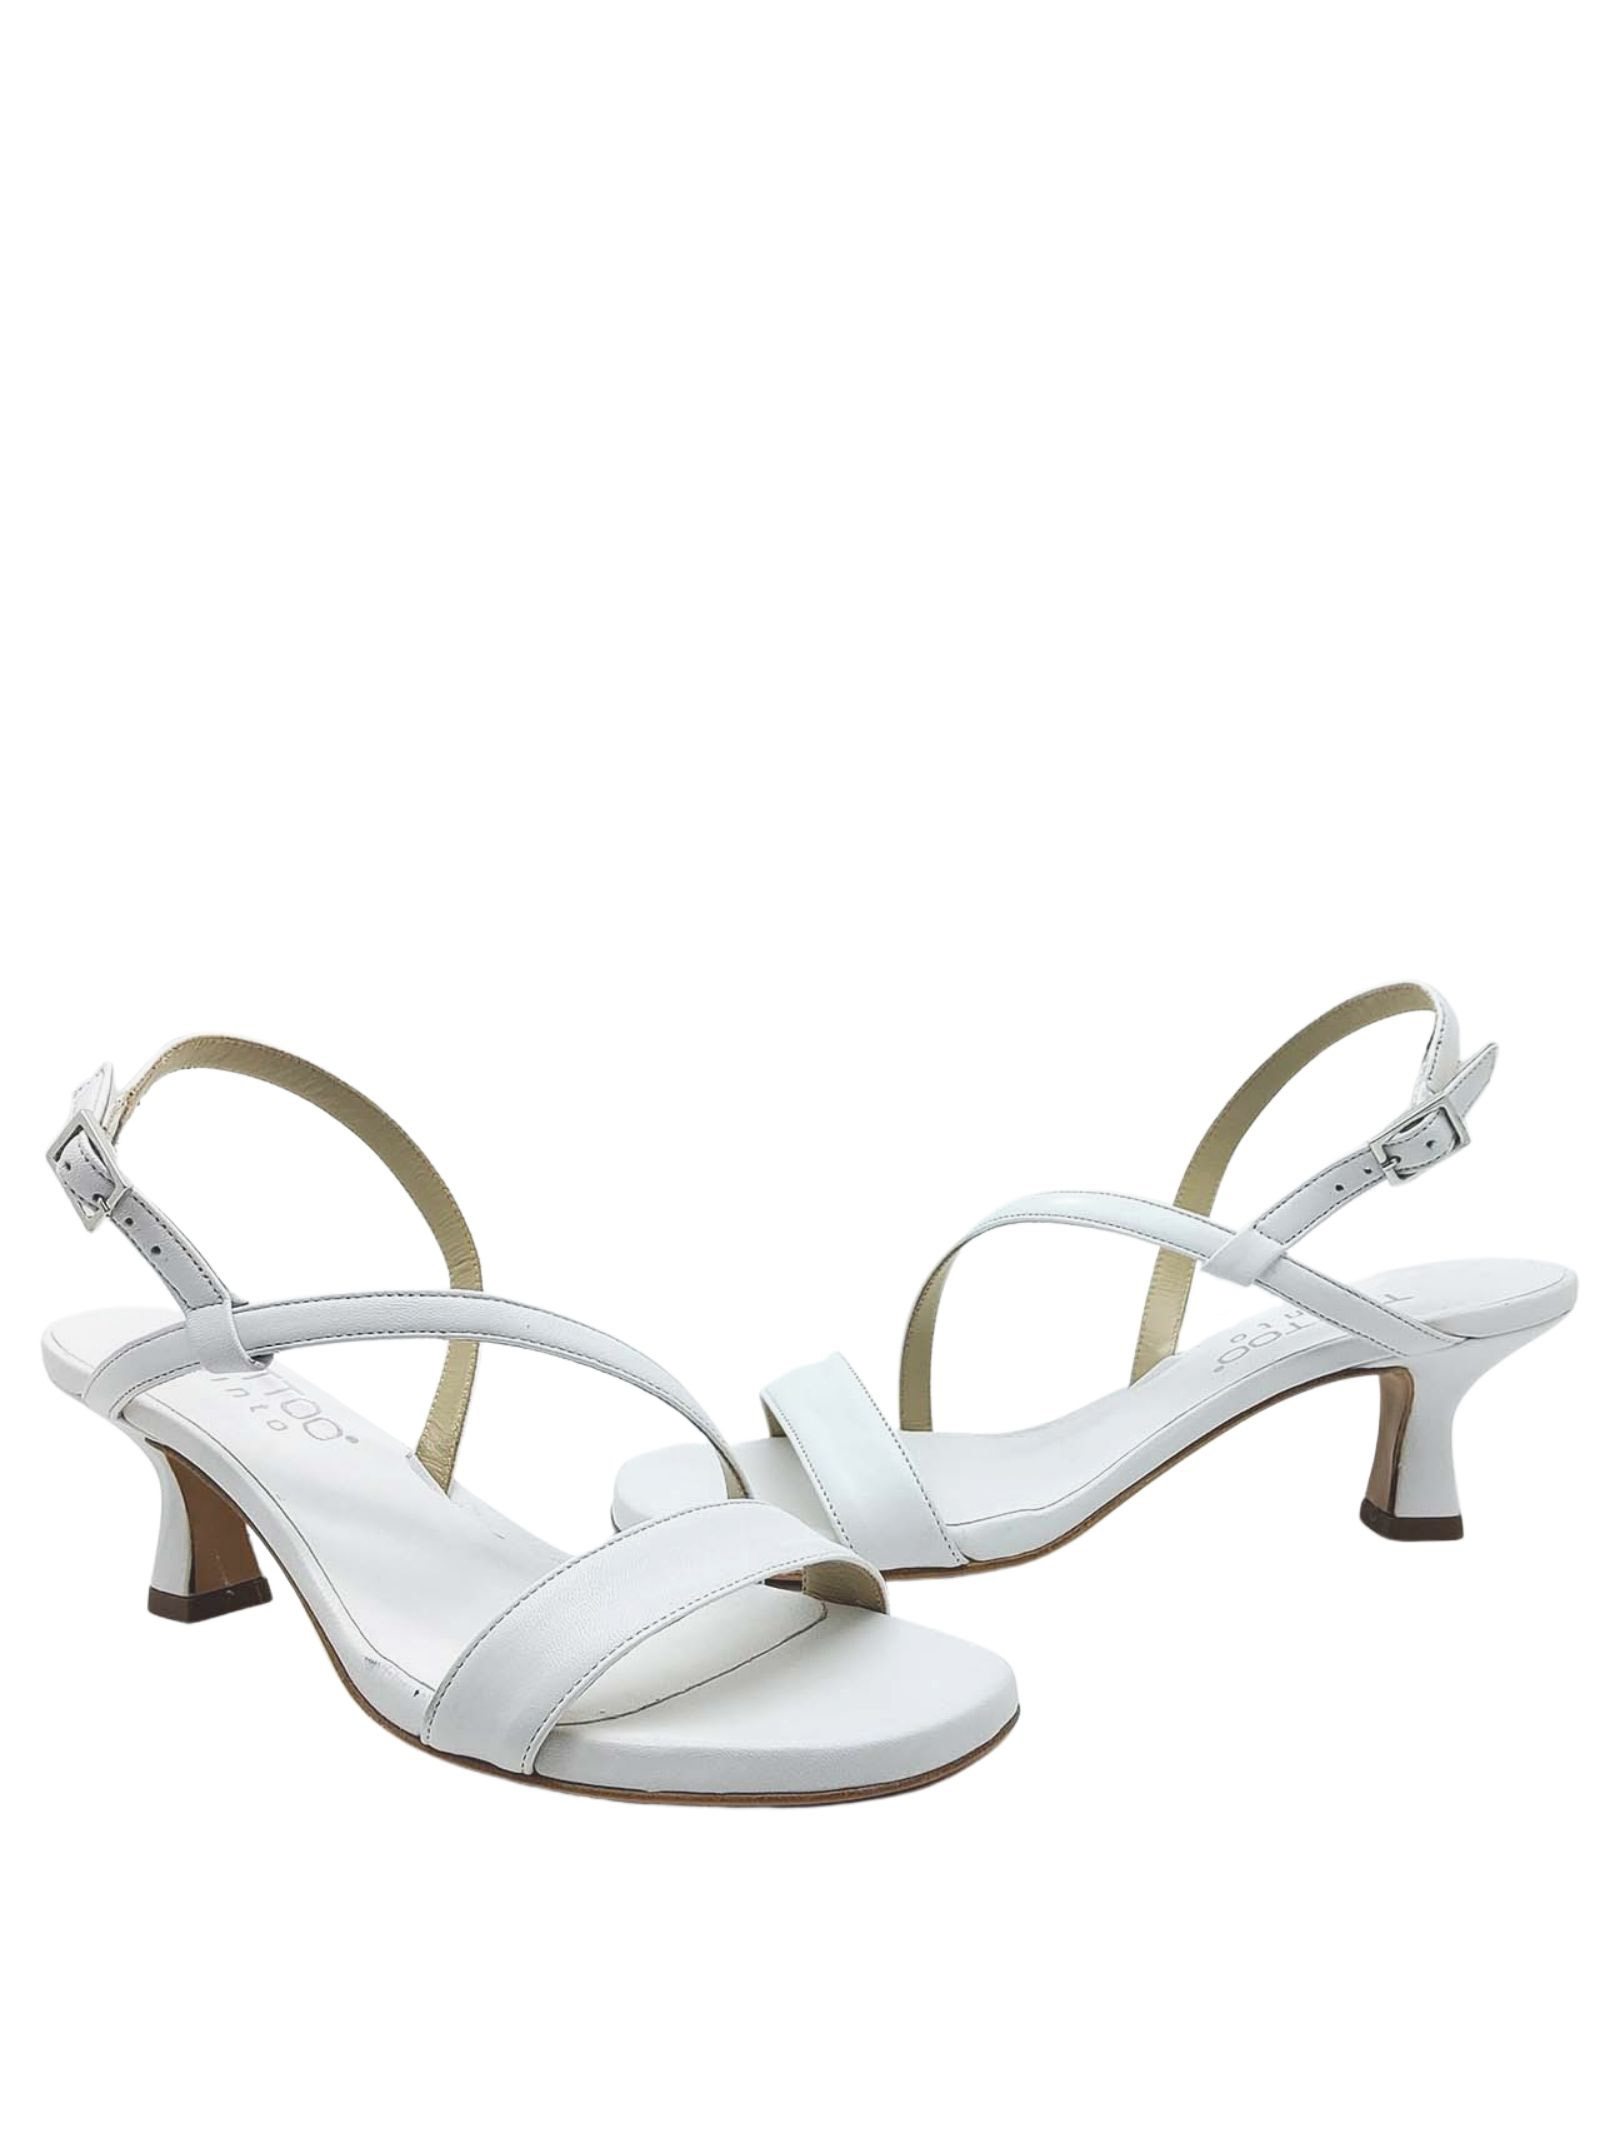 Women's Shoes White Leather Sandals Low Heel and Thin Straps Tattoo   Sandals   5011100